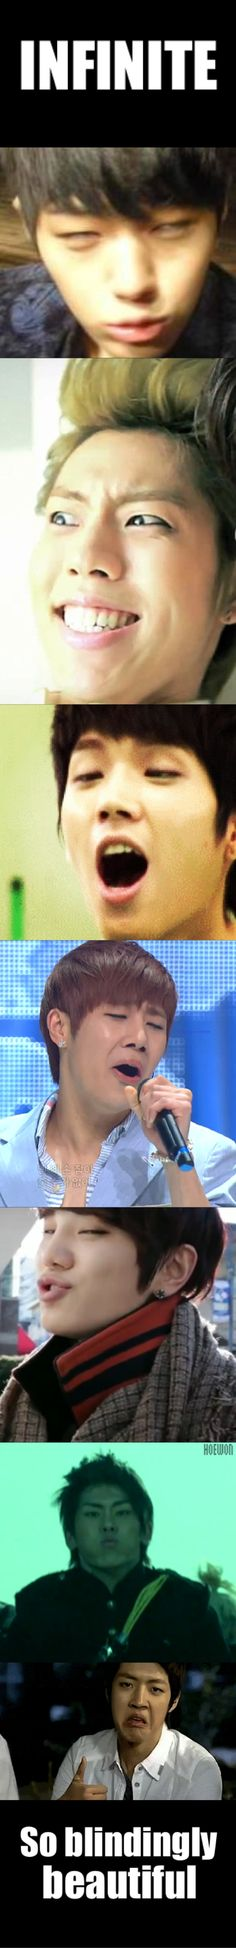 New Memes Kpop Face Crying 27 Ideas Tvxq, Btob, Shinee, Kim Myungsoo, All About Kpop, New Memes, Funny Memes, Woollim Entertainment, Cnblue